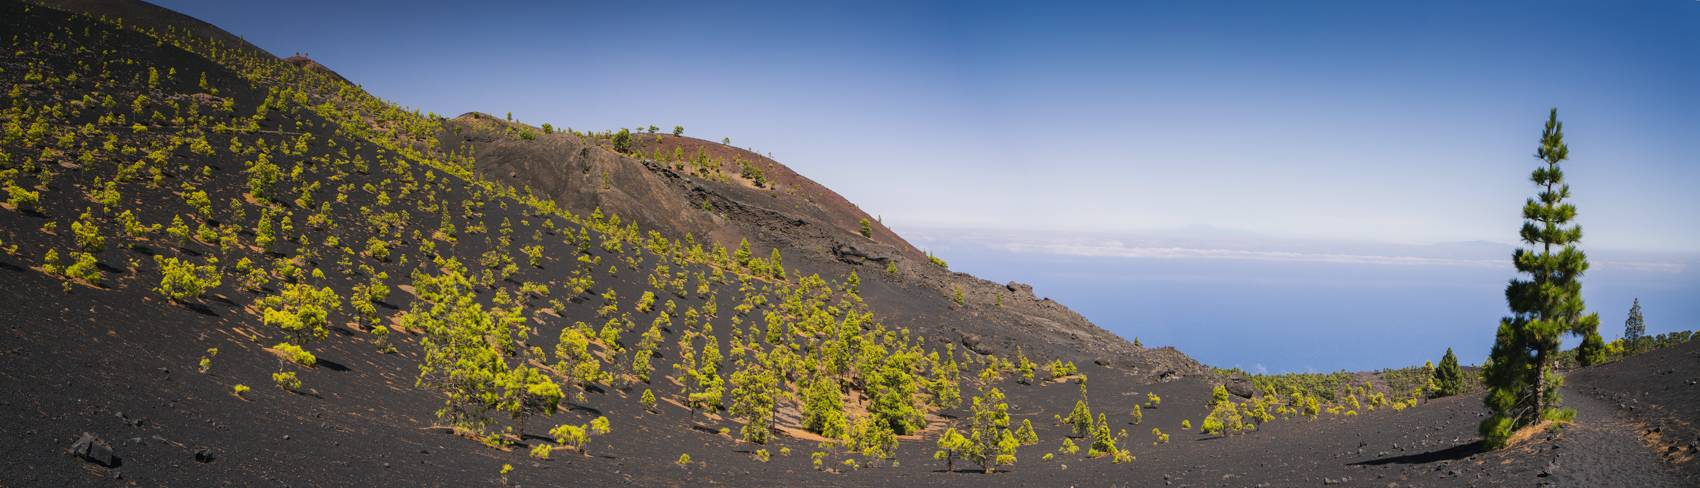 Photo Voyages : Îles Canaries #21